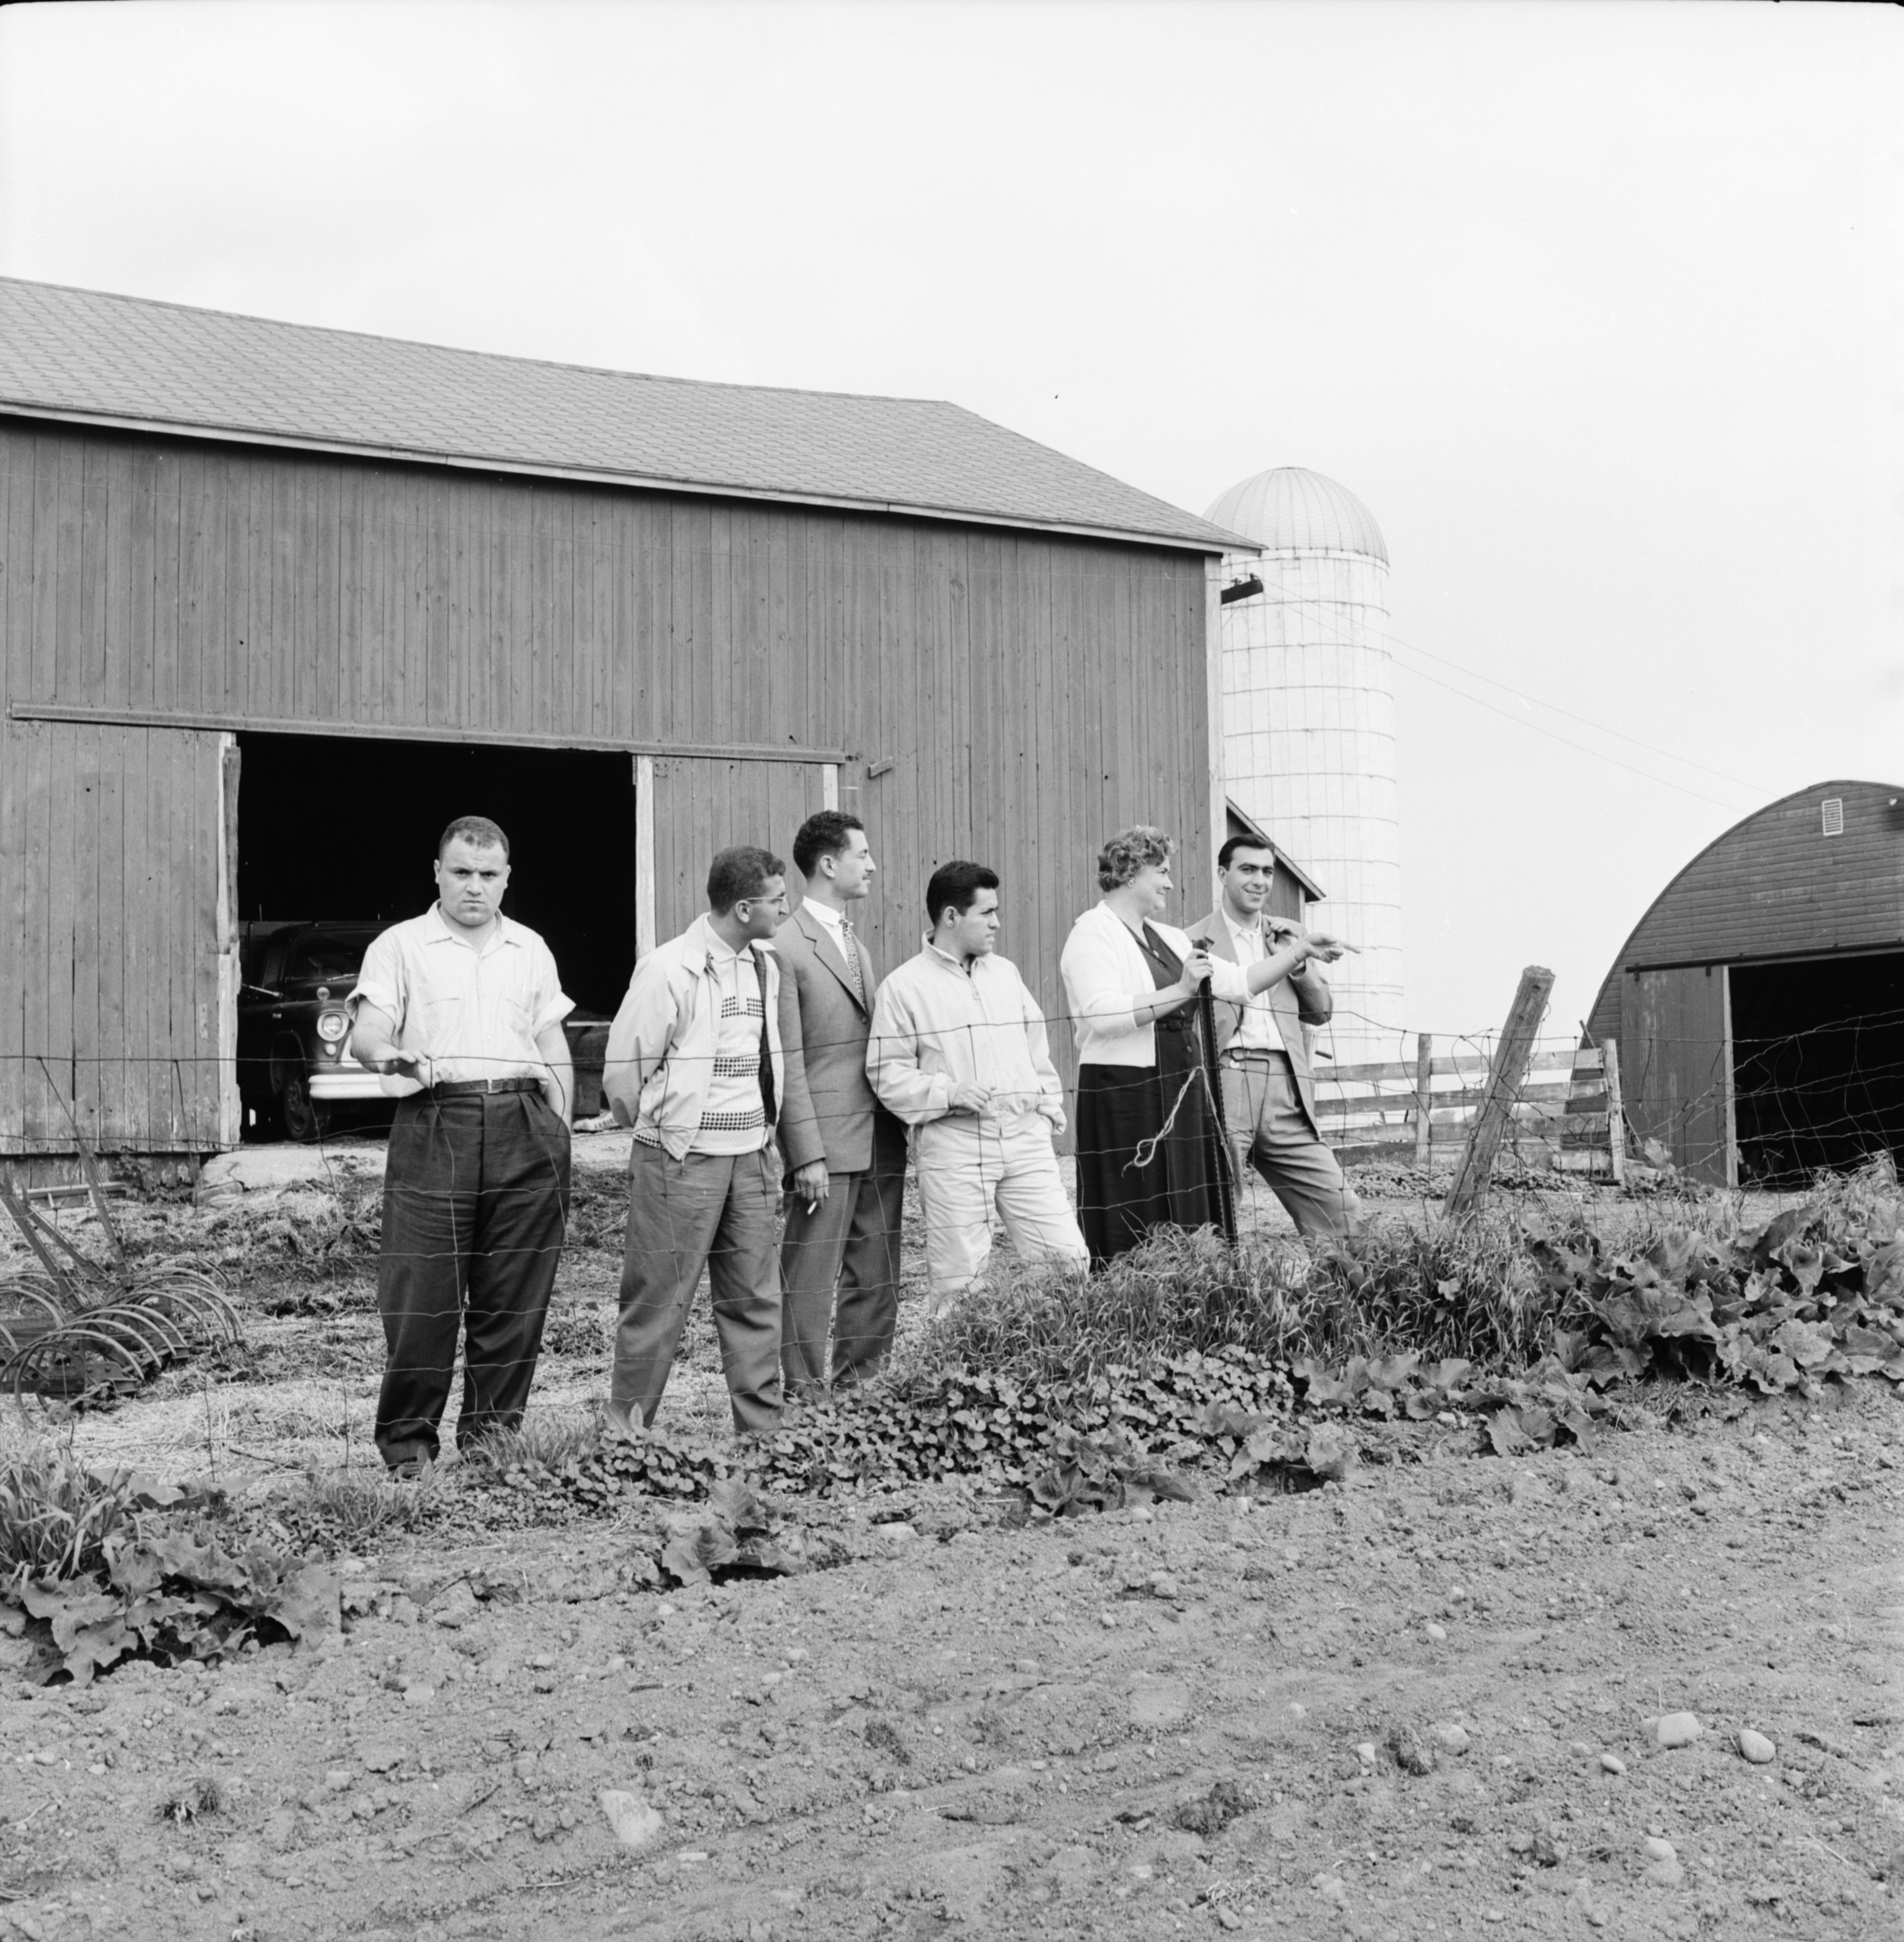 Five Foreign Exchange Students Visit the Tefft Farm, June 1960 image